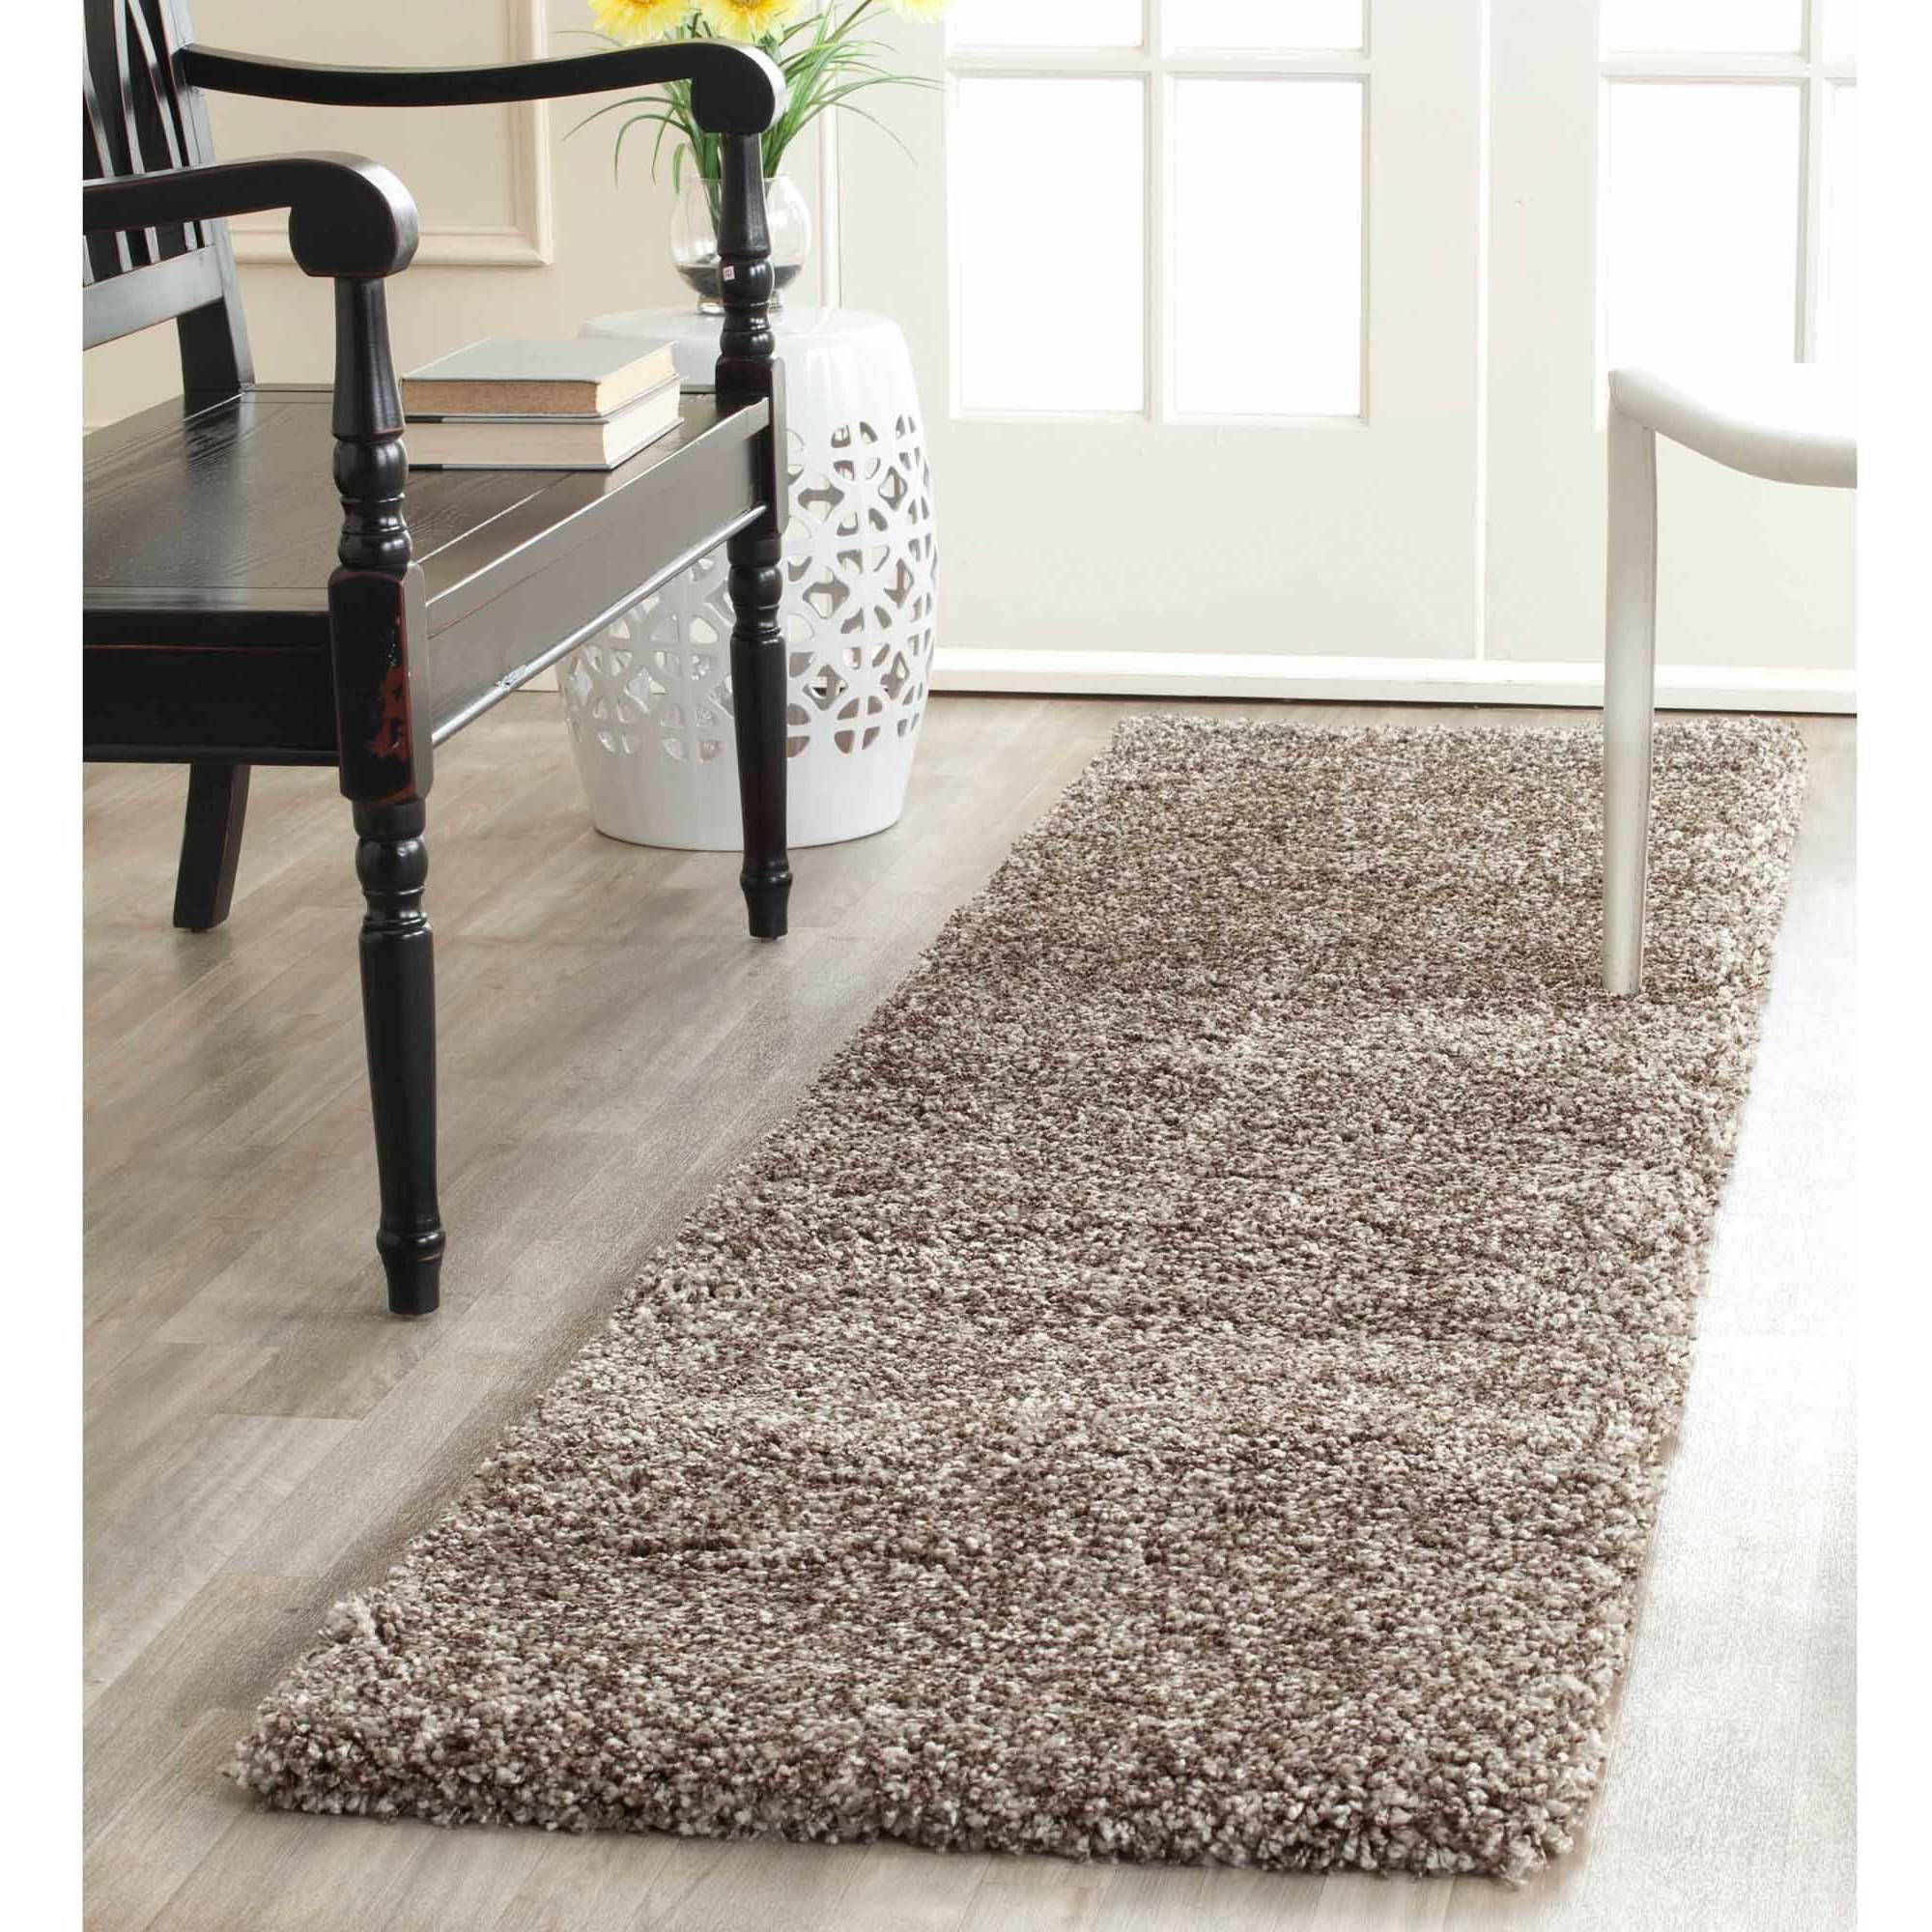 safavieh harlow power loomed milan shag area rug or runner - Safavieh Rug